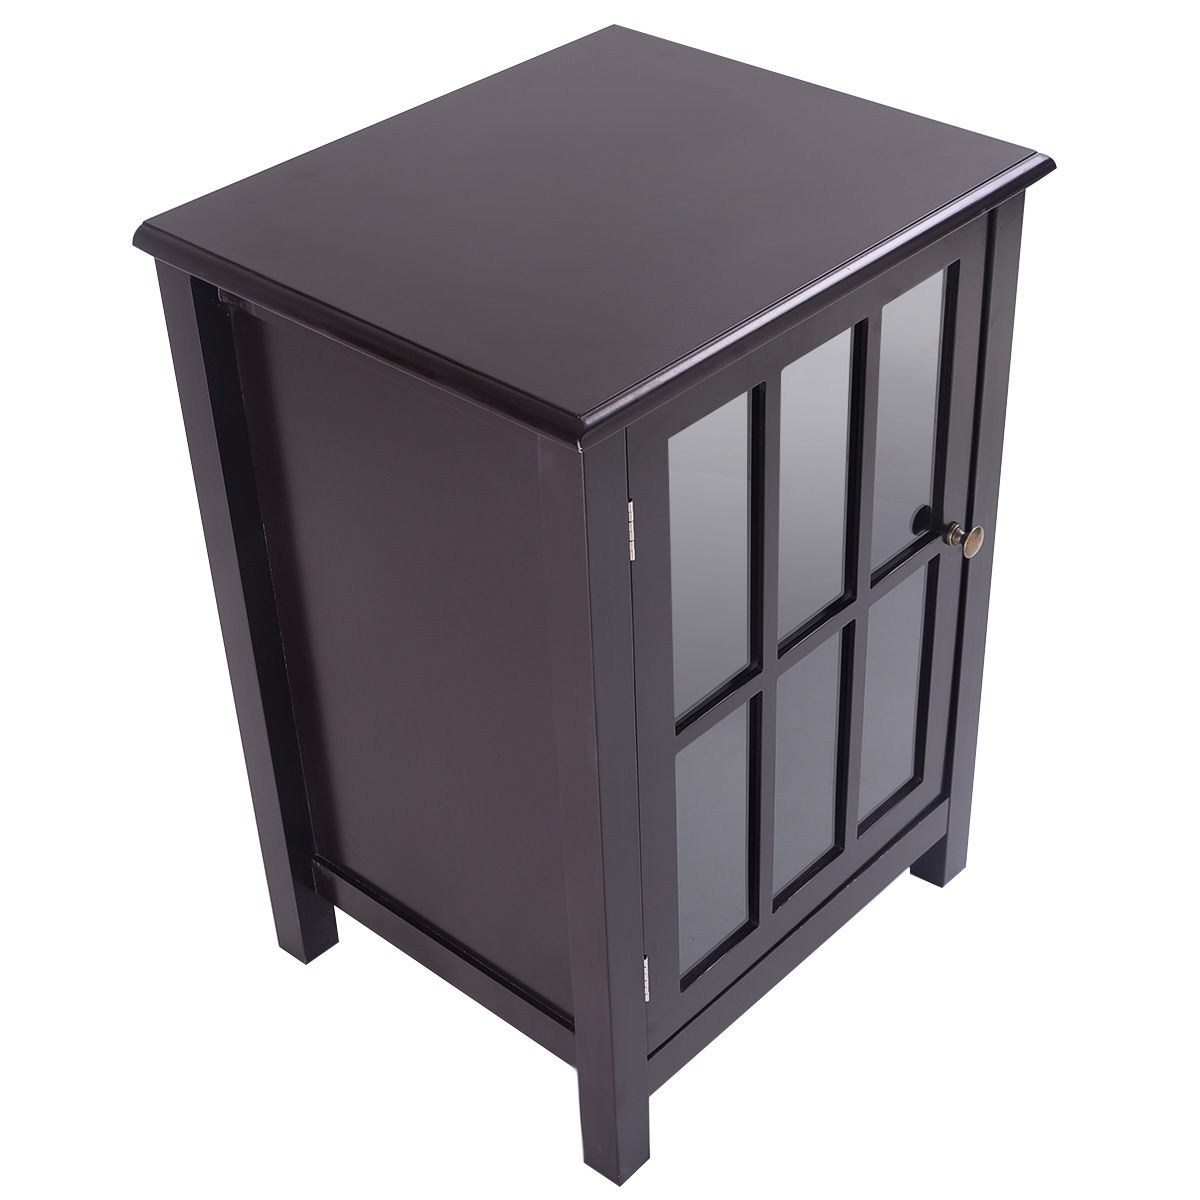 way one door accent cabinet storage shelf display home decor coffee linon galway table white espresso free shipping today kenzie chestnut end pier dining and chairs small chest